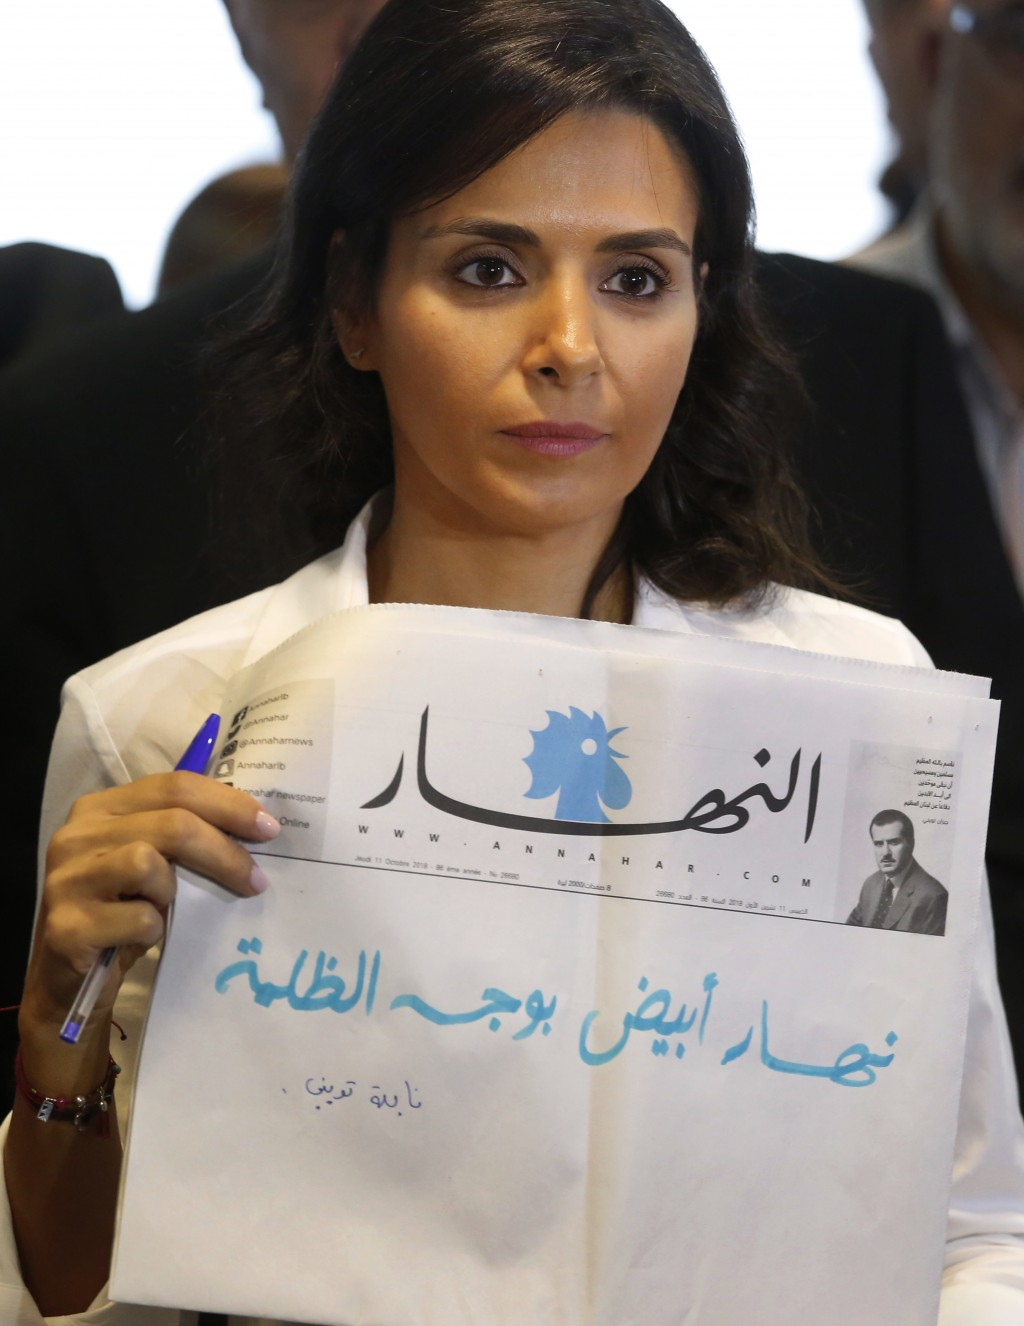 Nayla Tueni, the editor-in-chief of An-Nahar daily newspaper, holds a copy of a blank published newspaper in a strong protest against the paralysis in